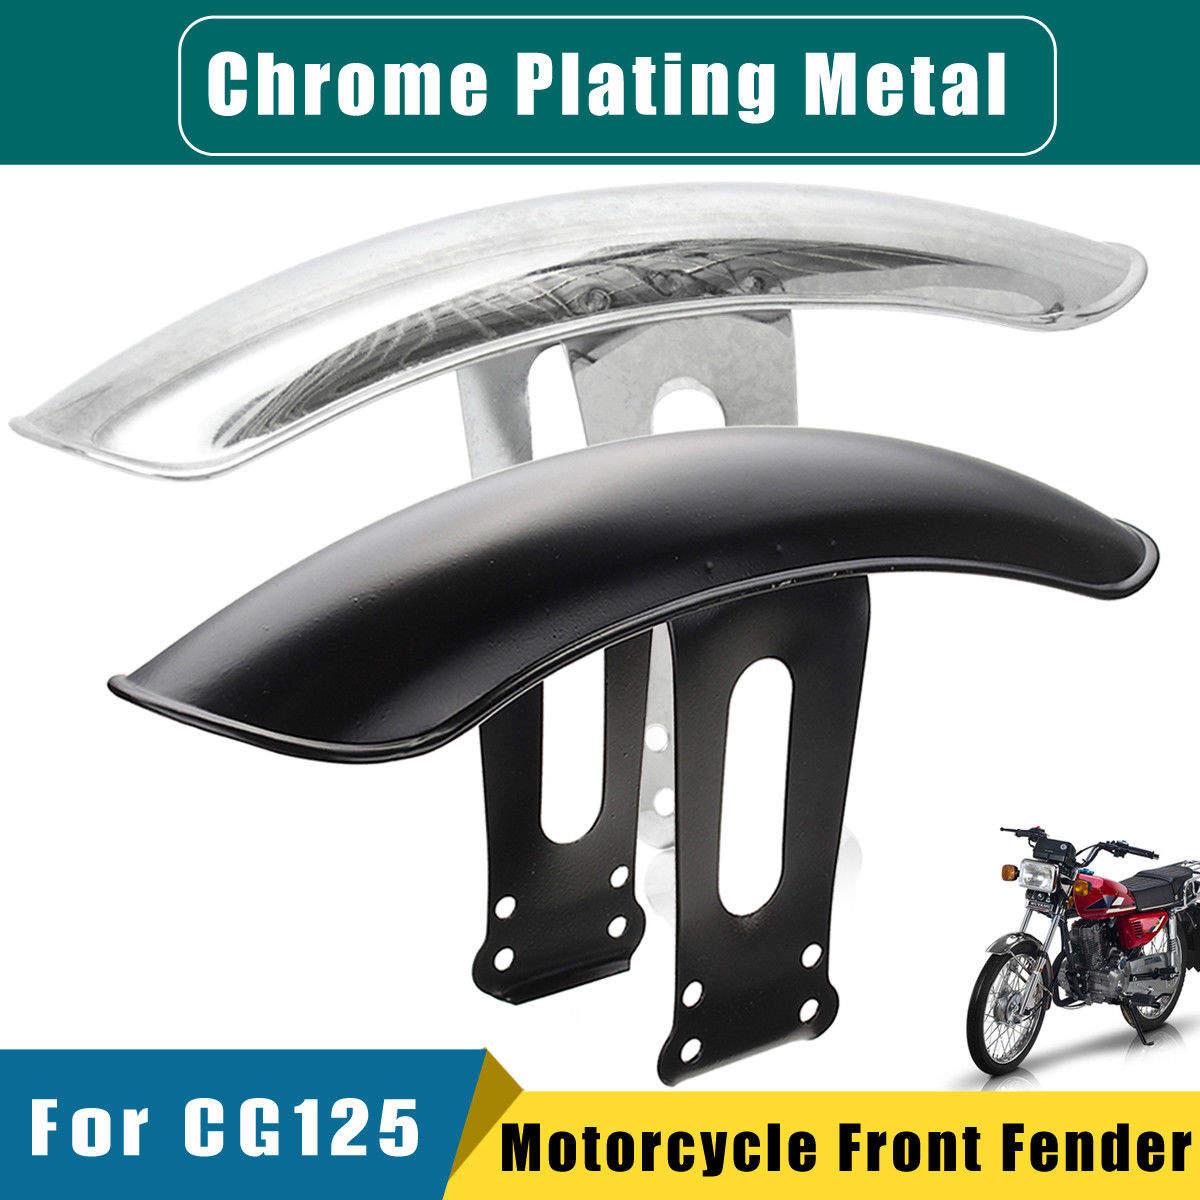 Motorcycle Front Fender Mudguard Mud Sand Guard Black Sliver Metal Motorcycle Accessions For Honda CG125